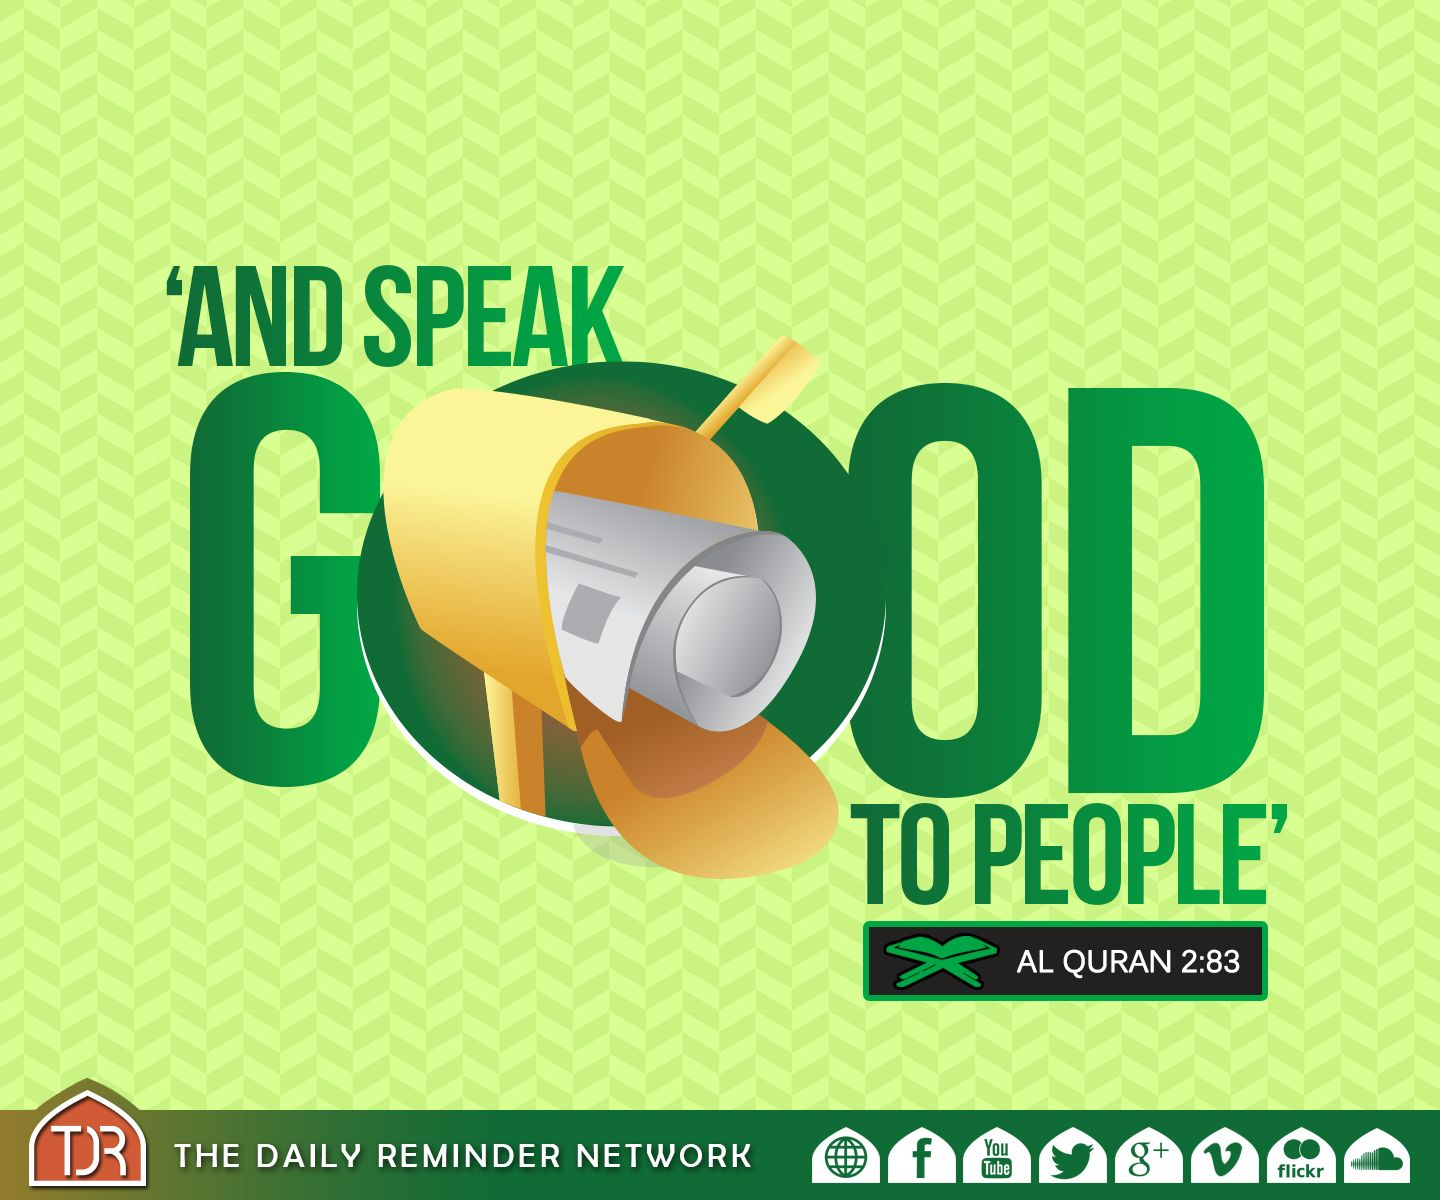 '...And speak good to people...' [2:83]